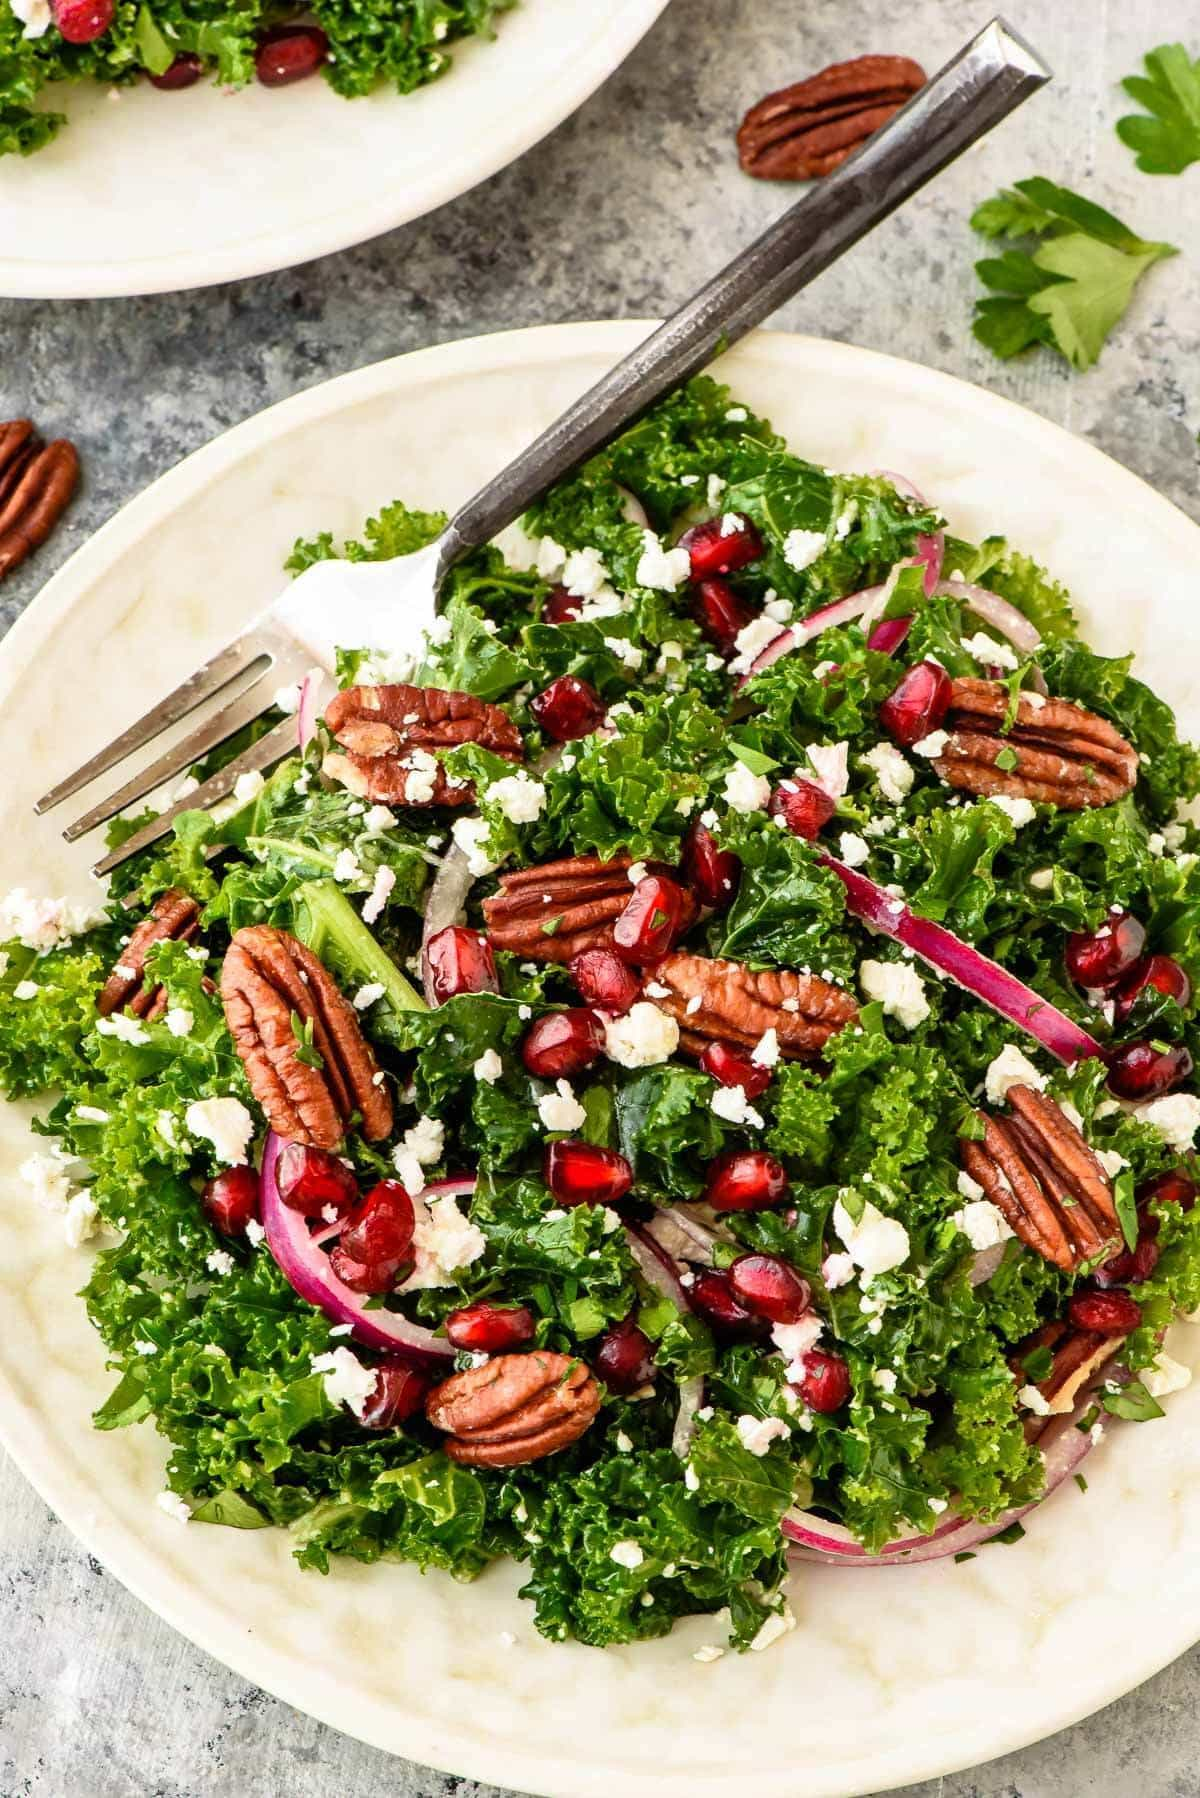 Kale Salad with Pomegranate and Pecans — Perfect for a light lunch or make-ahead holiday side dish.